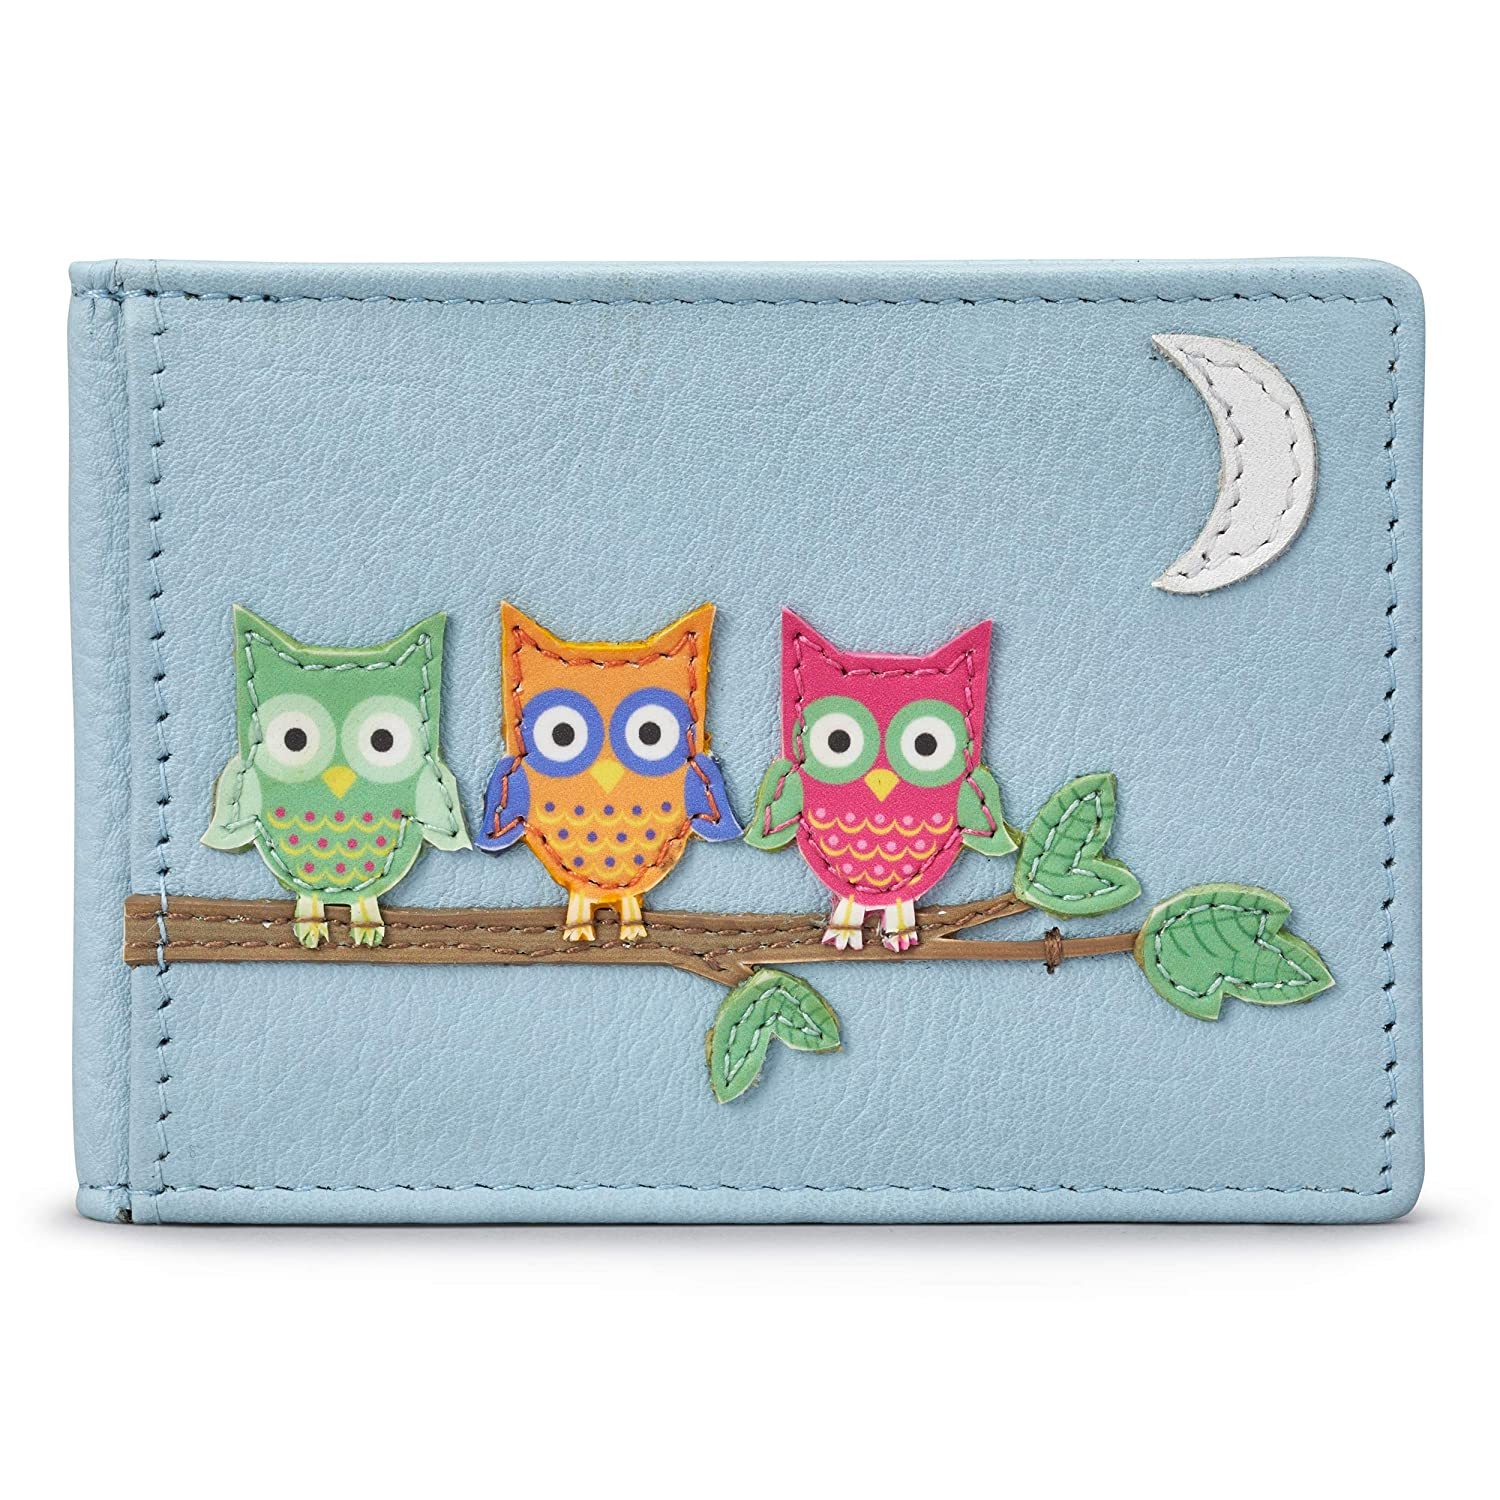 Blue Owl Applique Leather Oyster Card//Travel Pass Holder by 1642